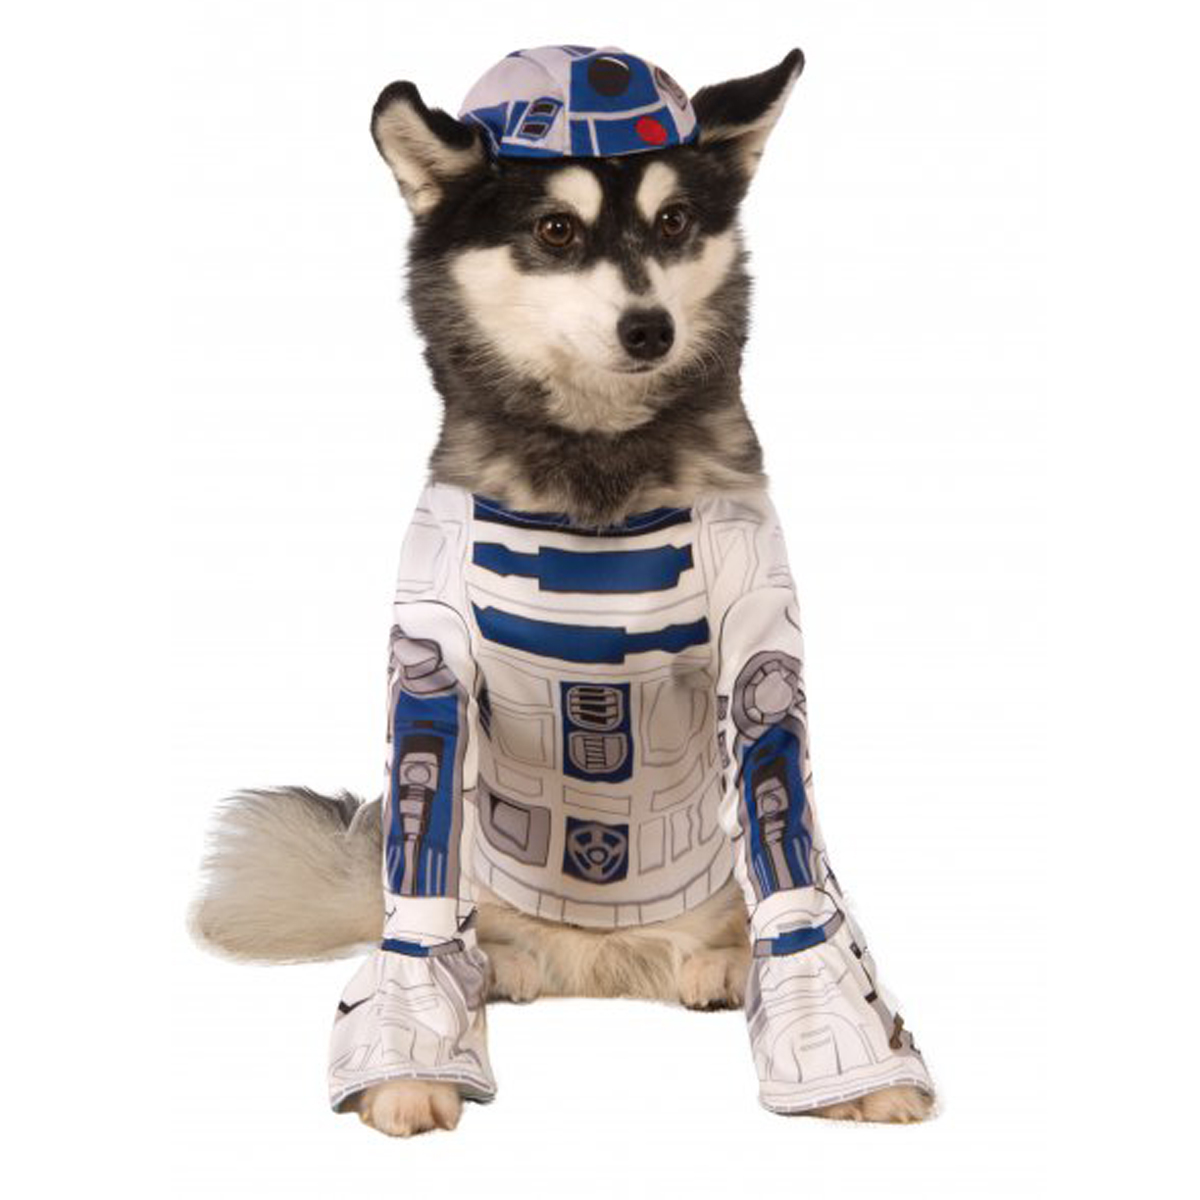 Star Wars R2-D2 Dog Costume